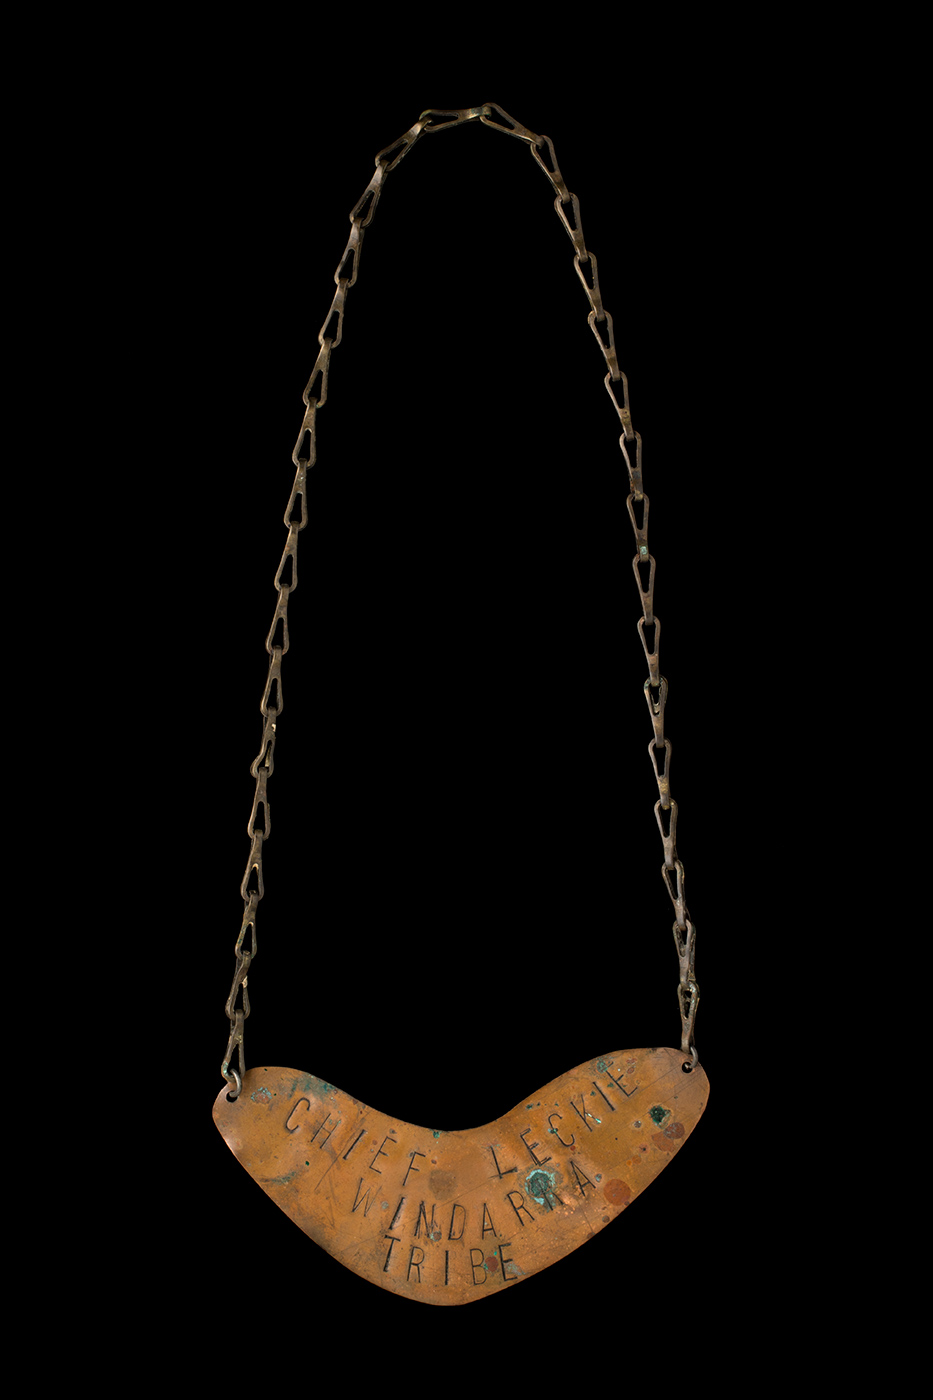 Engraved breastplate with a long chain. - click to view larger image